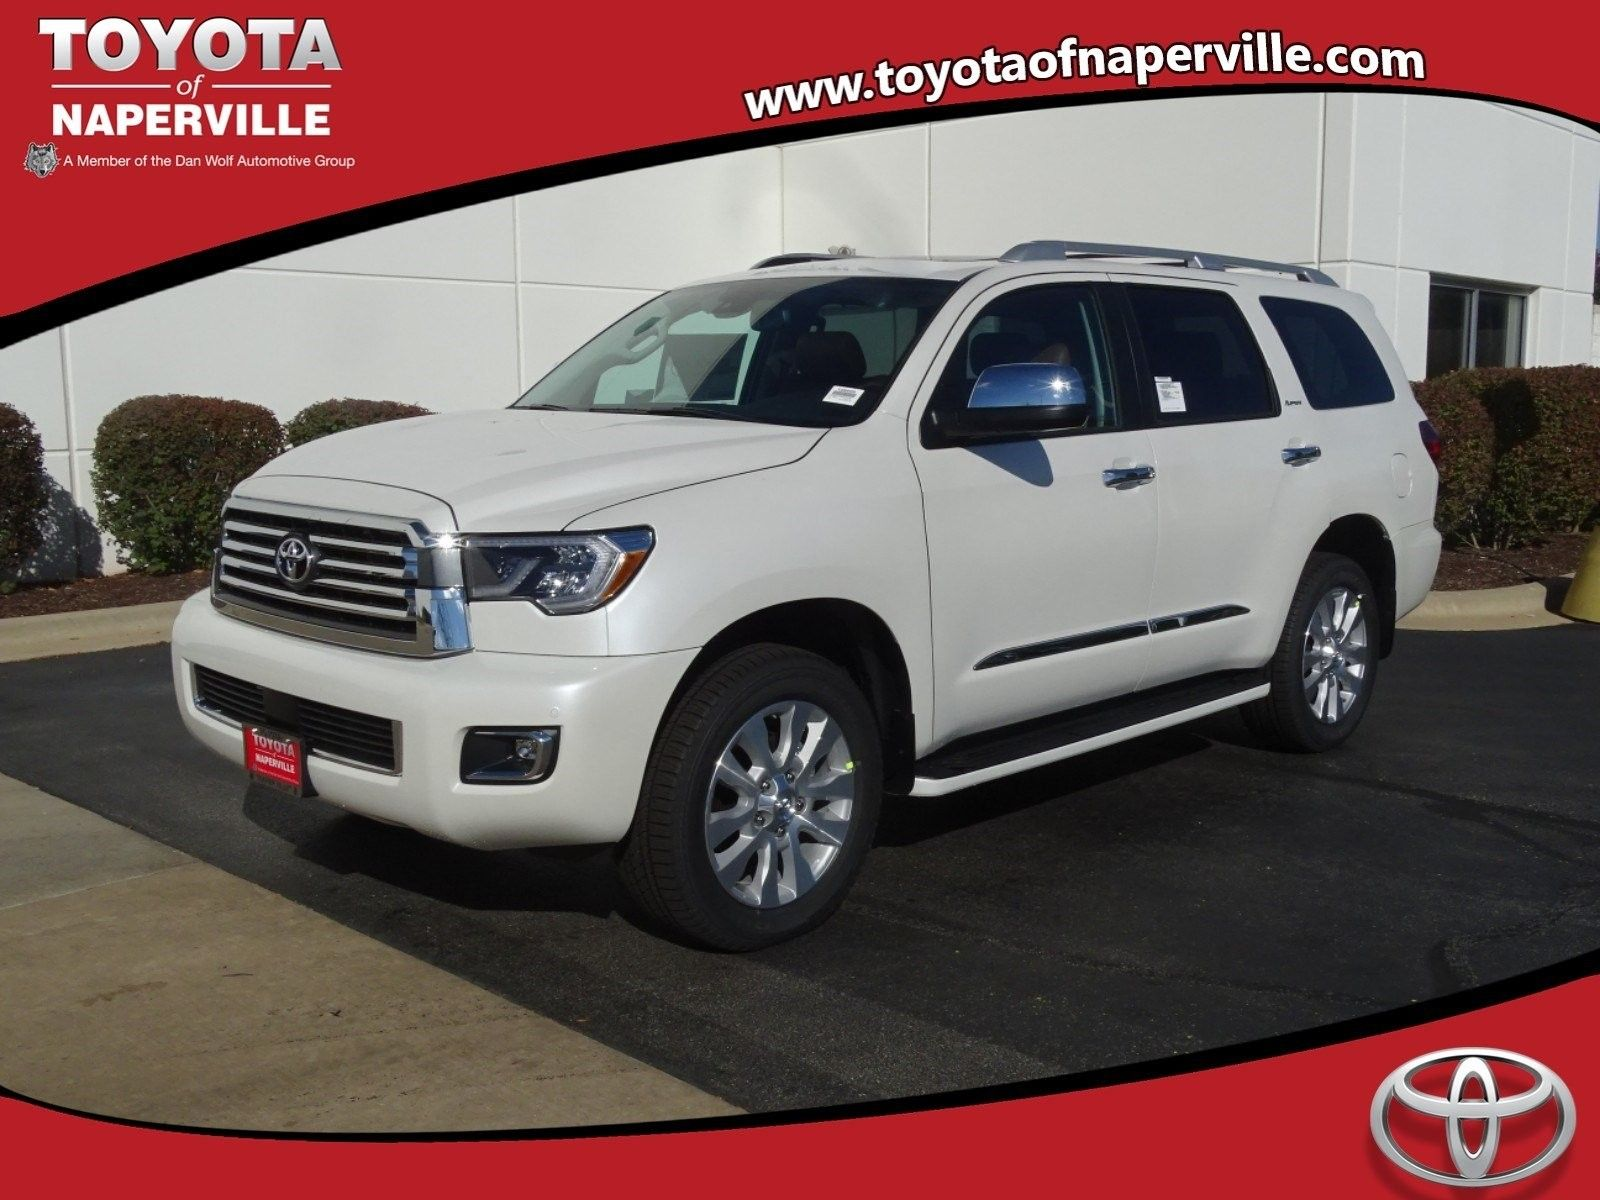 2019 Toyota Sequoia Platinum Interior, Exterior and Review